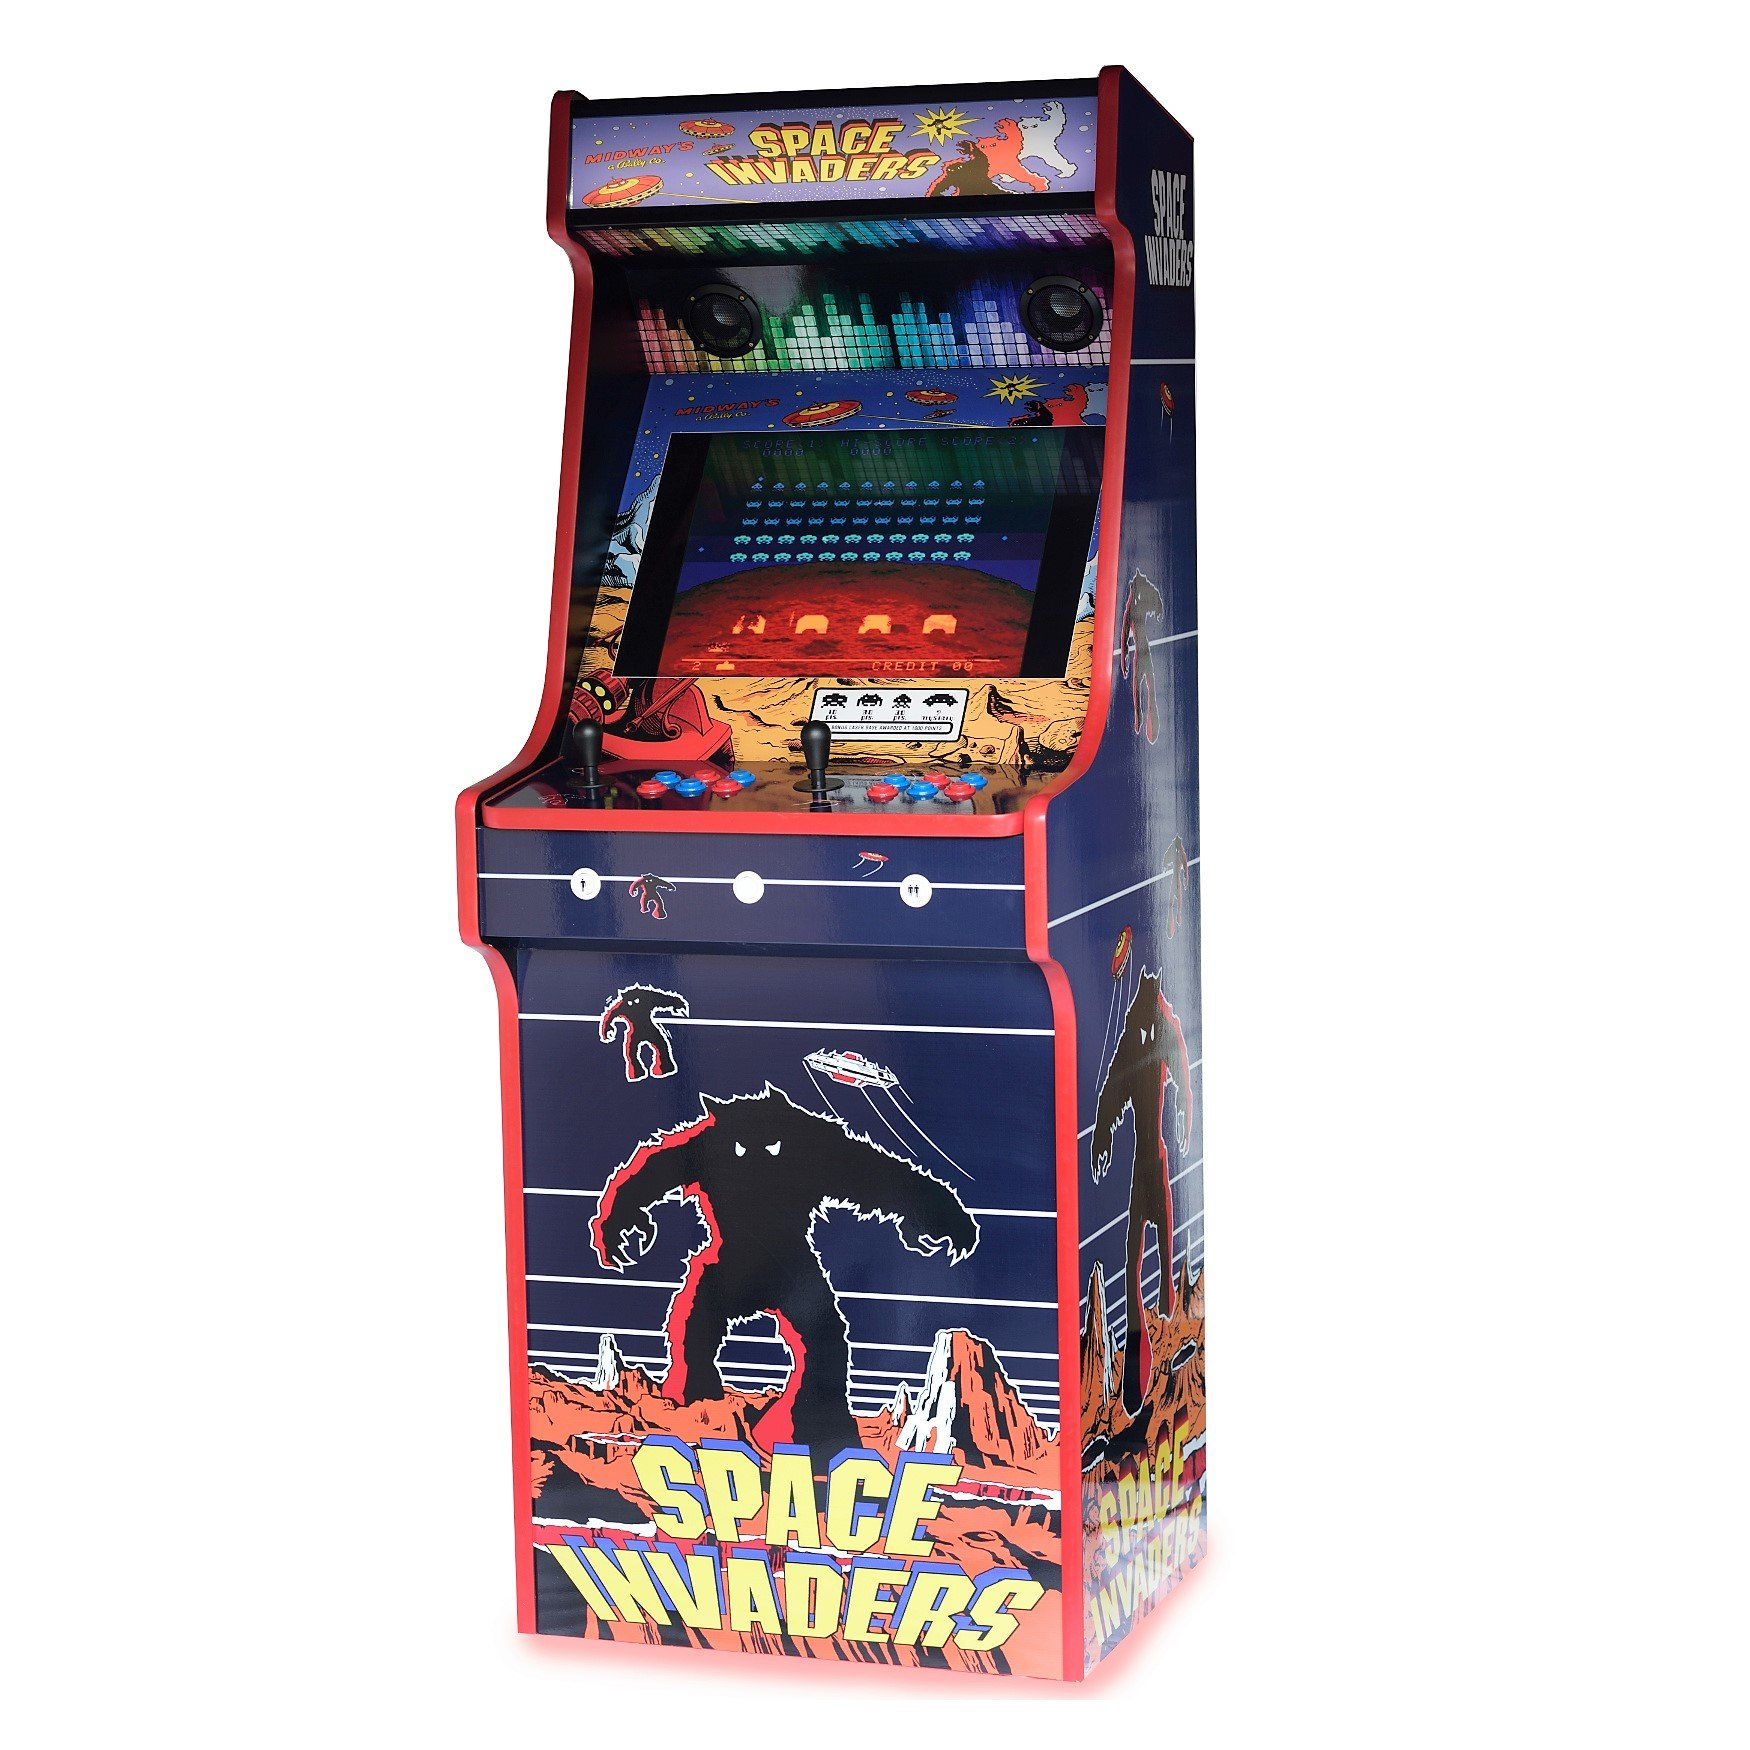 Classic Upright Arcade Machine - Space Invaders Theme right side